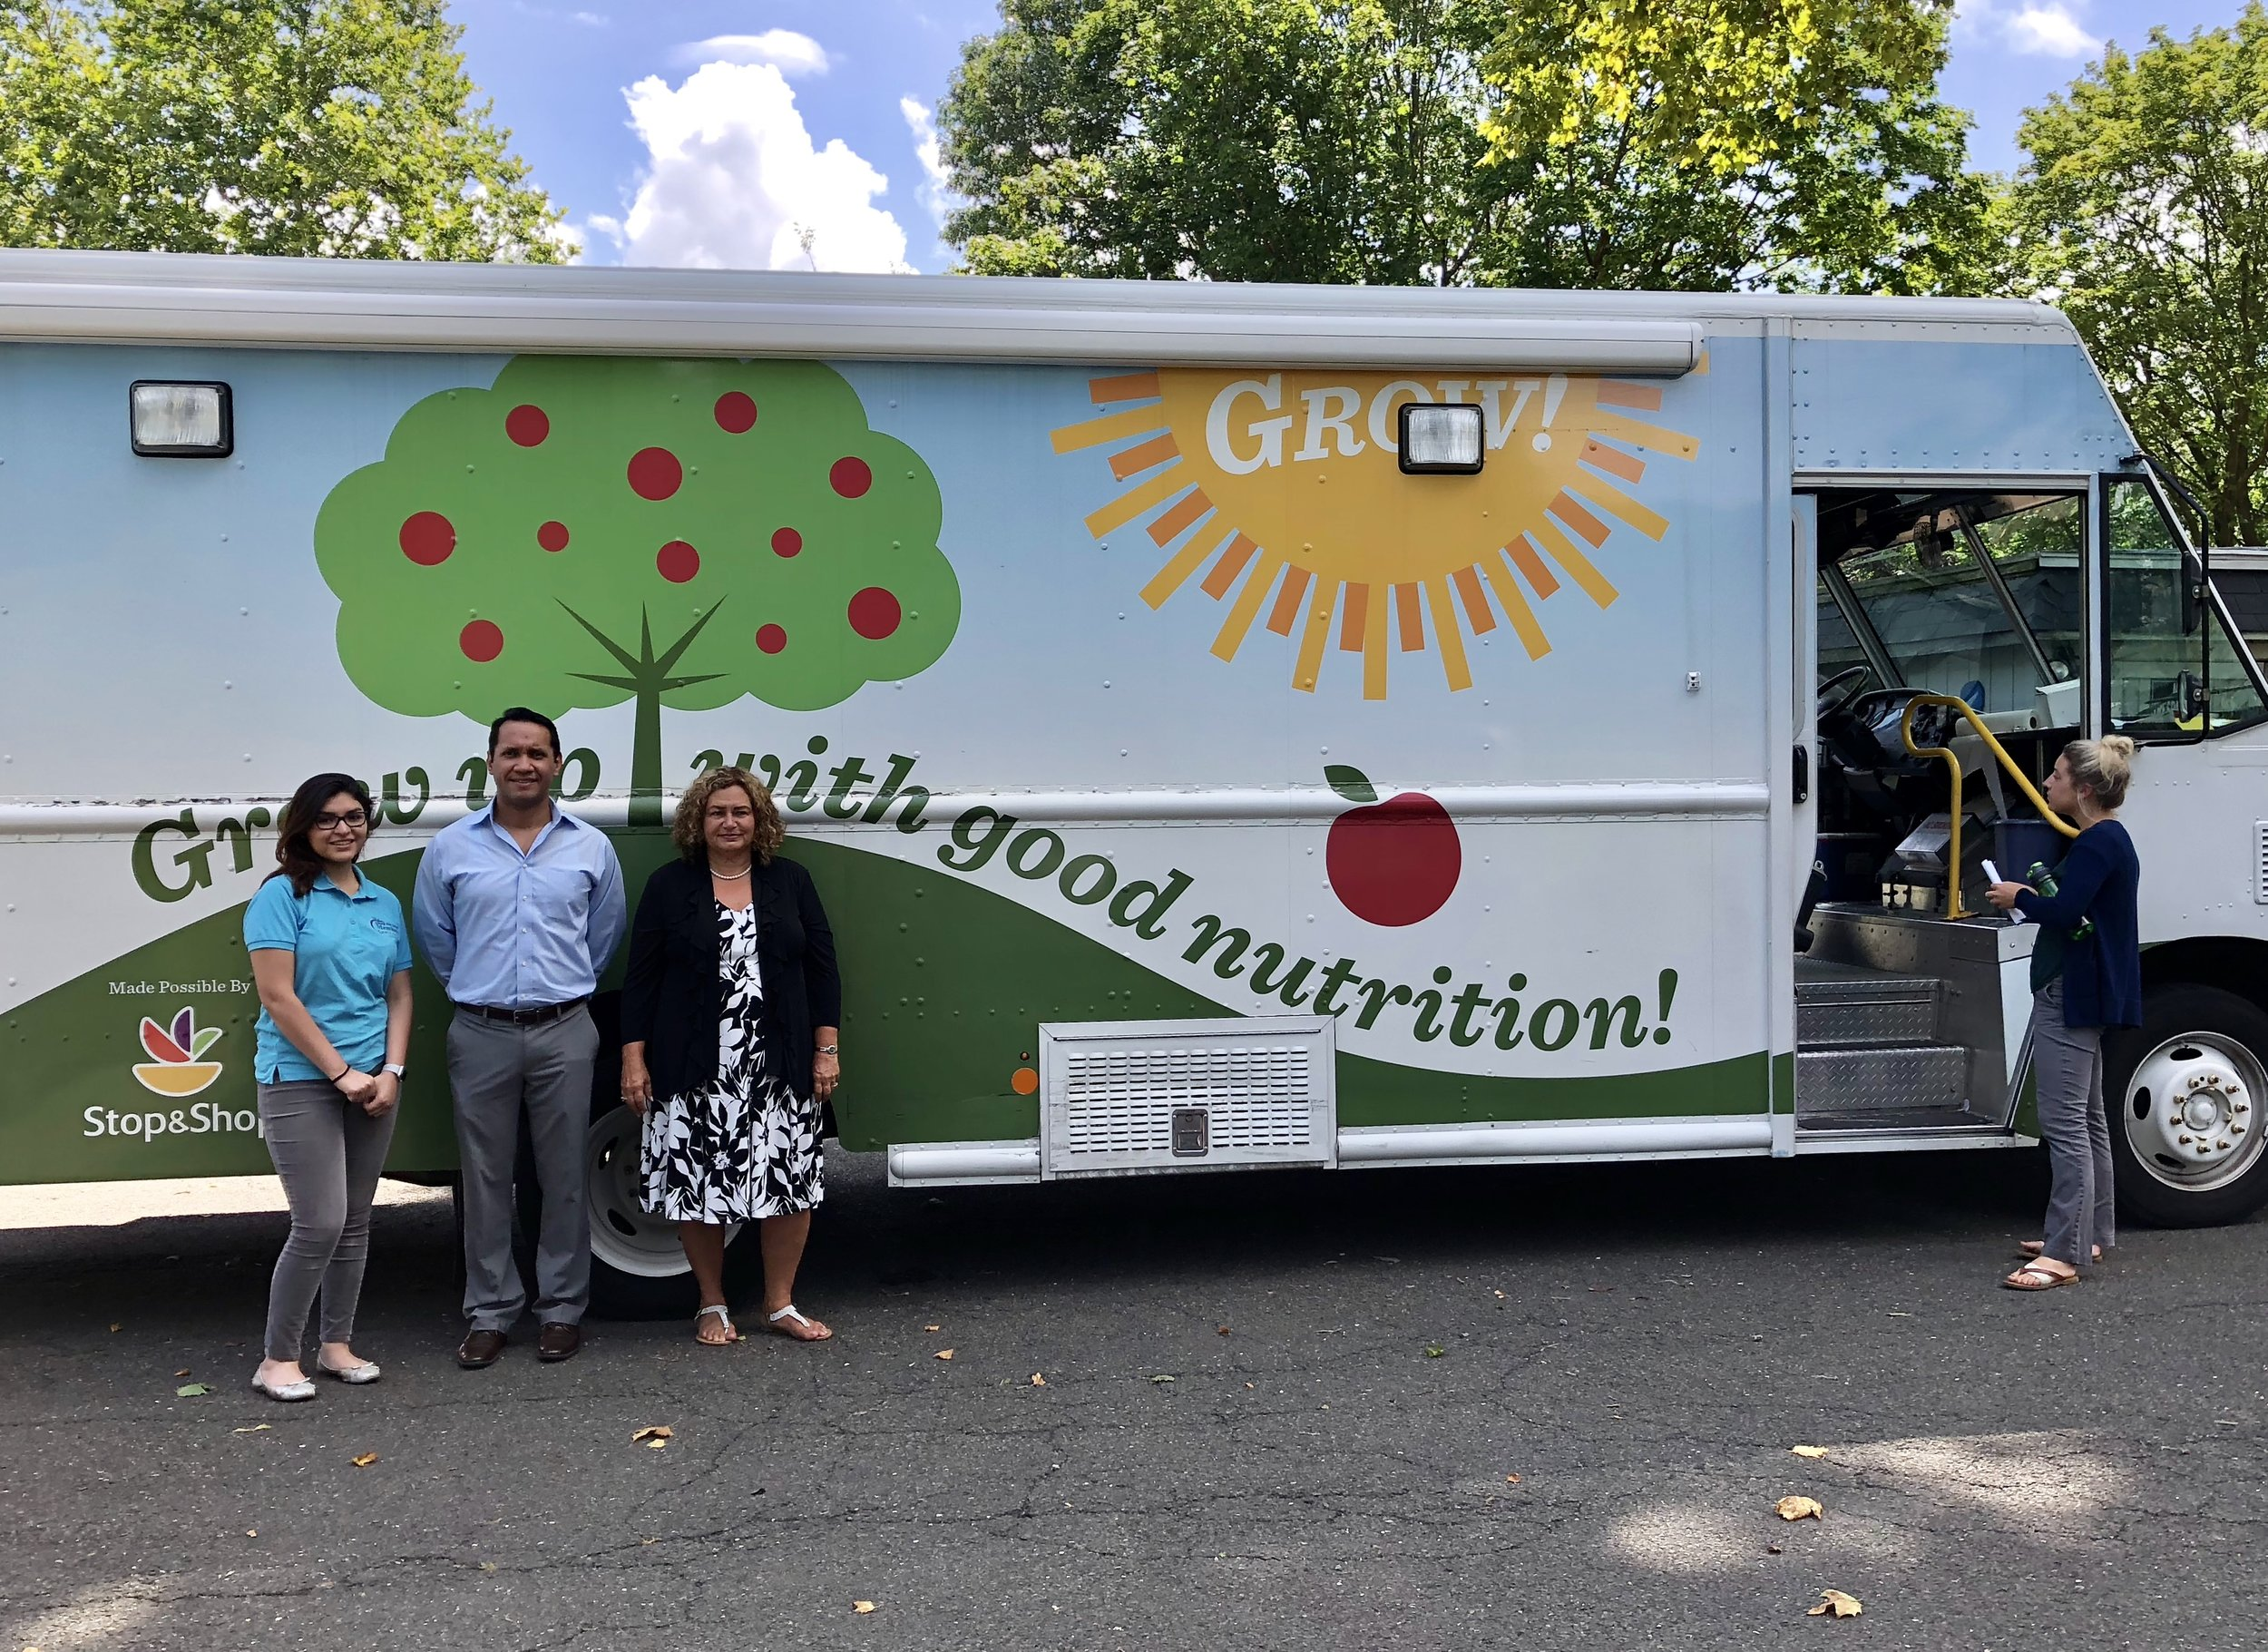 Grow with good nutrition truck